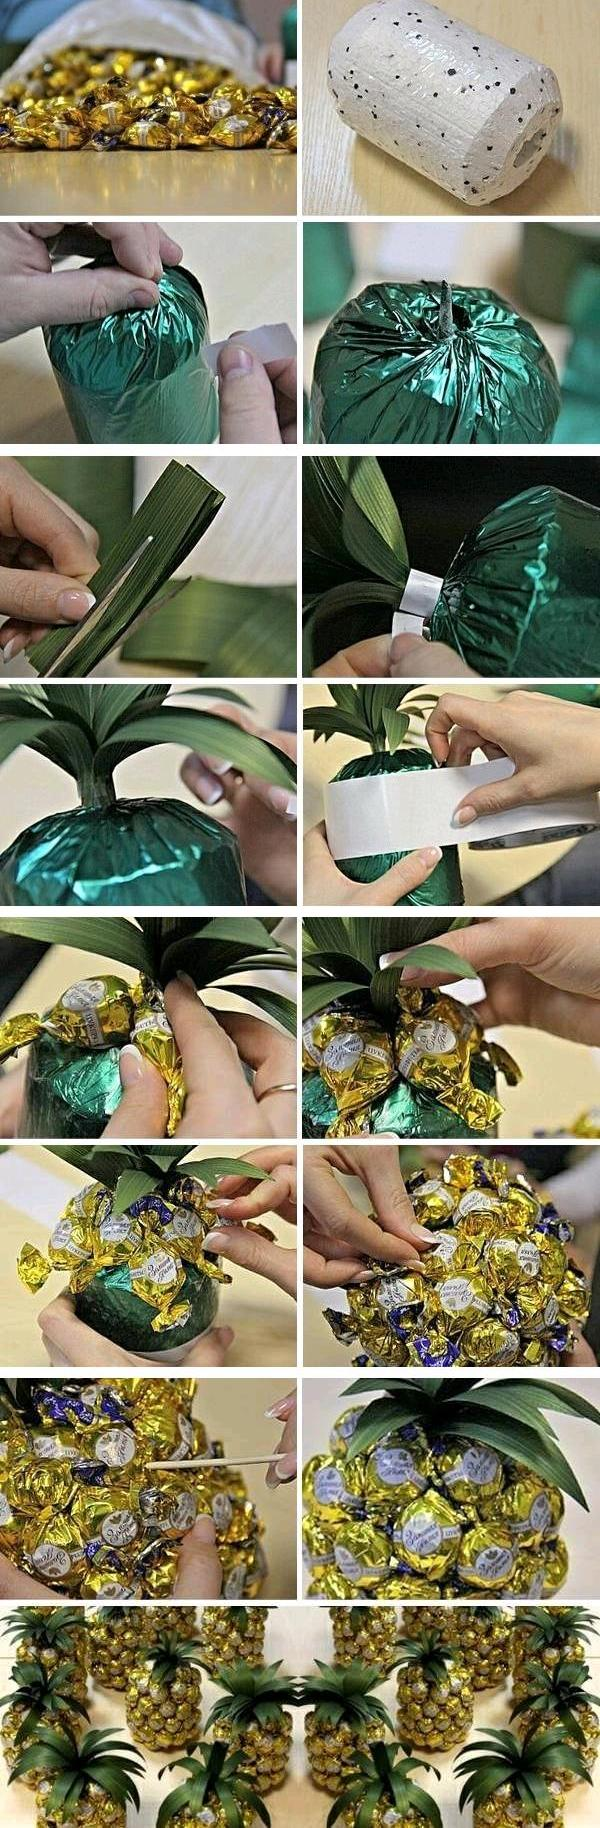 Feb 19, · Make them a gift on their own, or use each bag to wrap a wine bottle for your hostess. Print an antique corkscrew picture on iron-on transfer paper. Follow directions to transfer the picture to a jute or burlap healthpot.ml: Better Homes & Gardens.